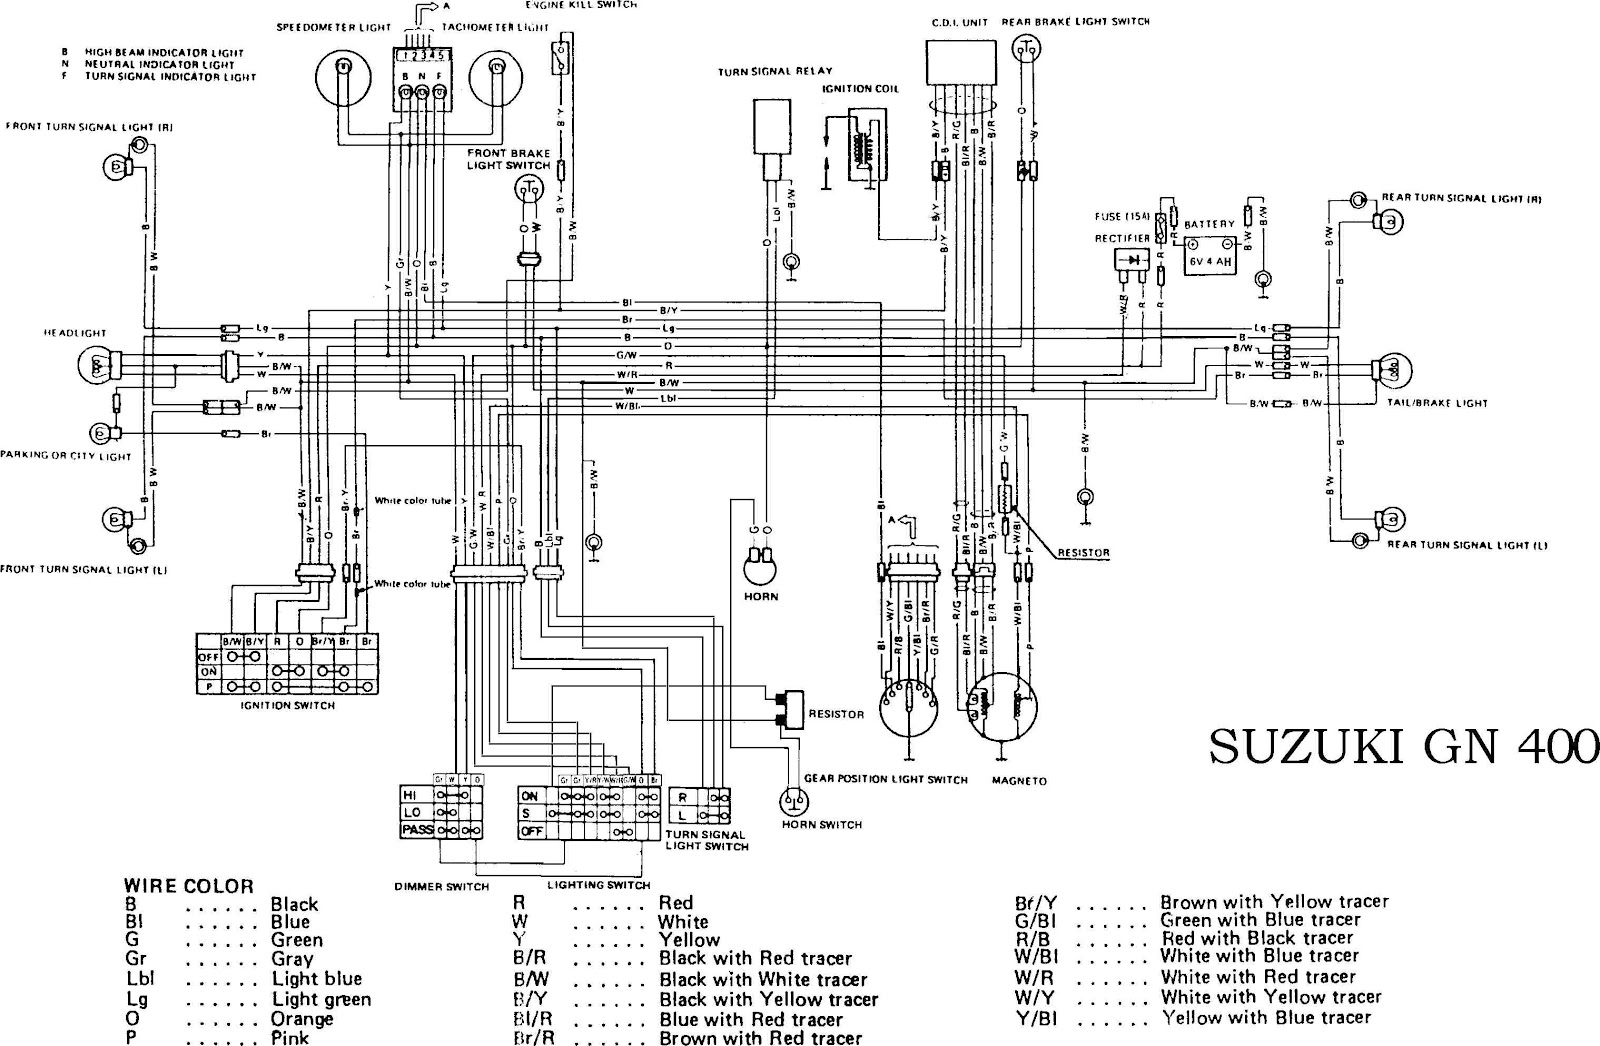 Suzuki+GN400+motorcycle+Complete+Electrical+Wiring+Diagram?resize=665%2C435 suzuki bandit wiring diagram the best wiring diagram 2017 2003 gsxr 600 wiring diagram download at creativeand.co